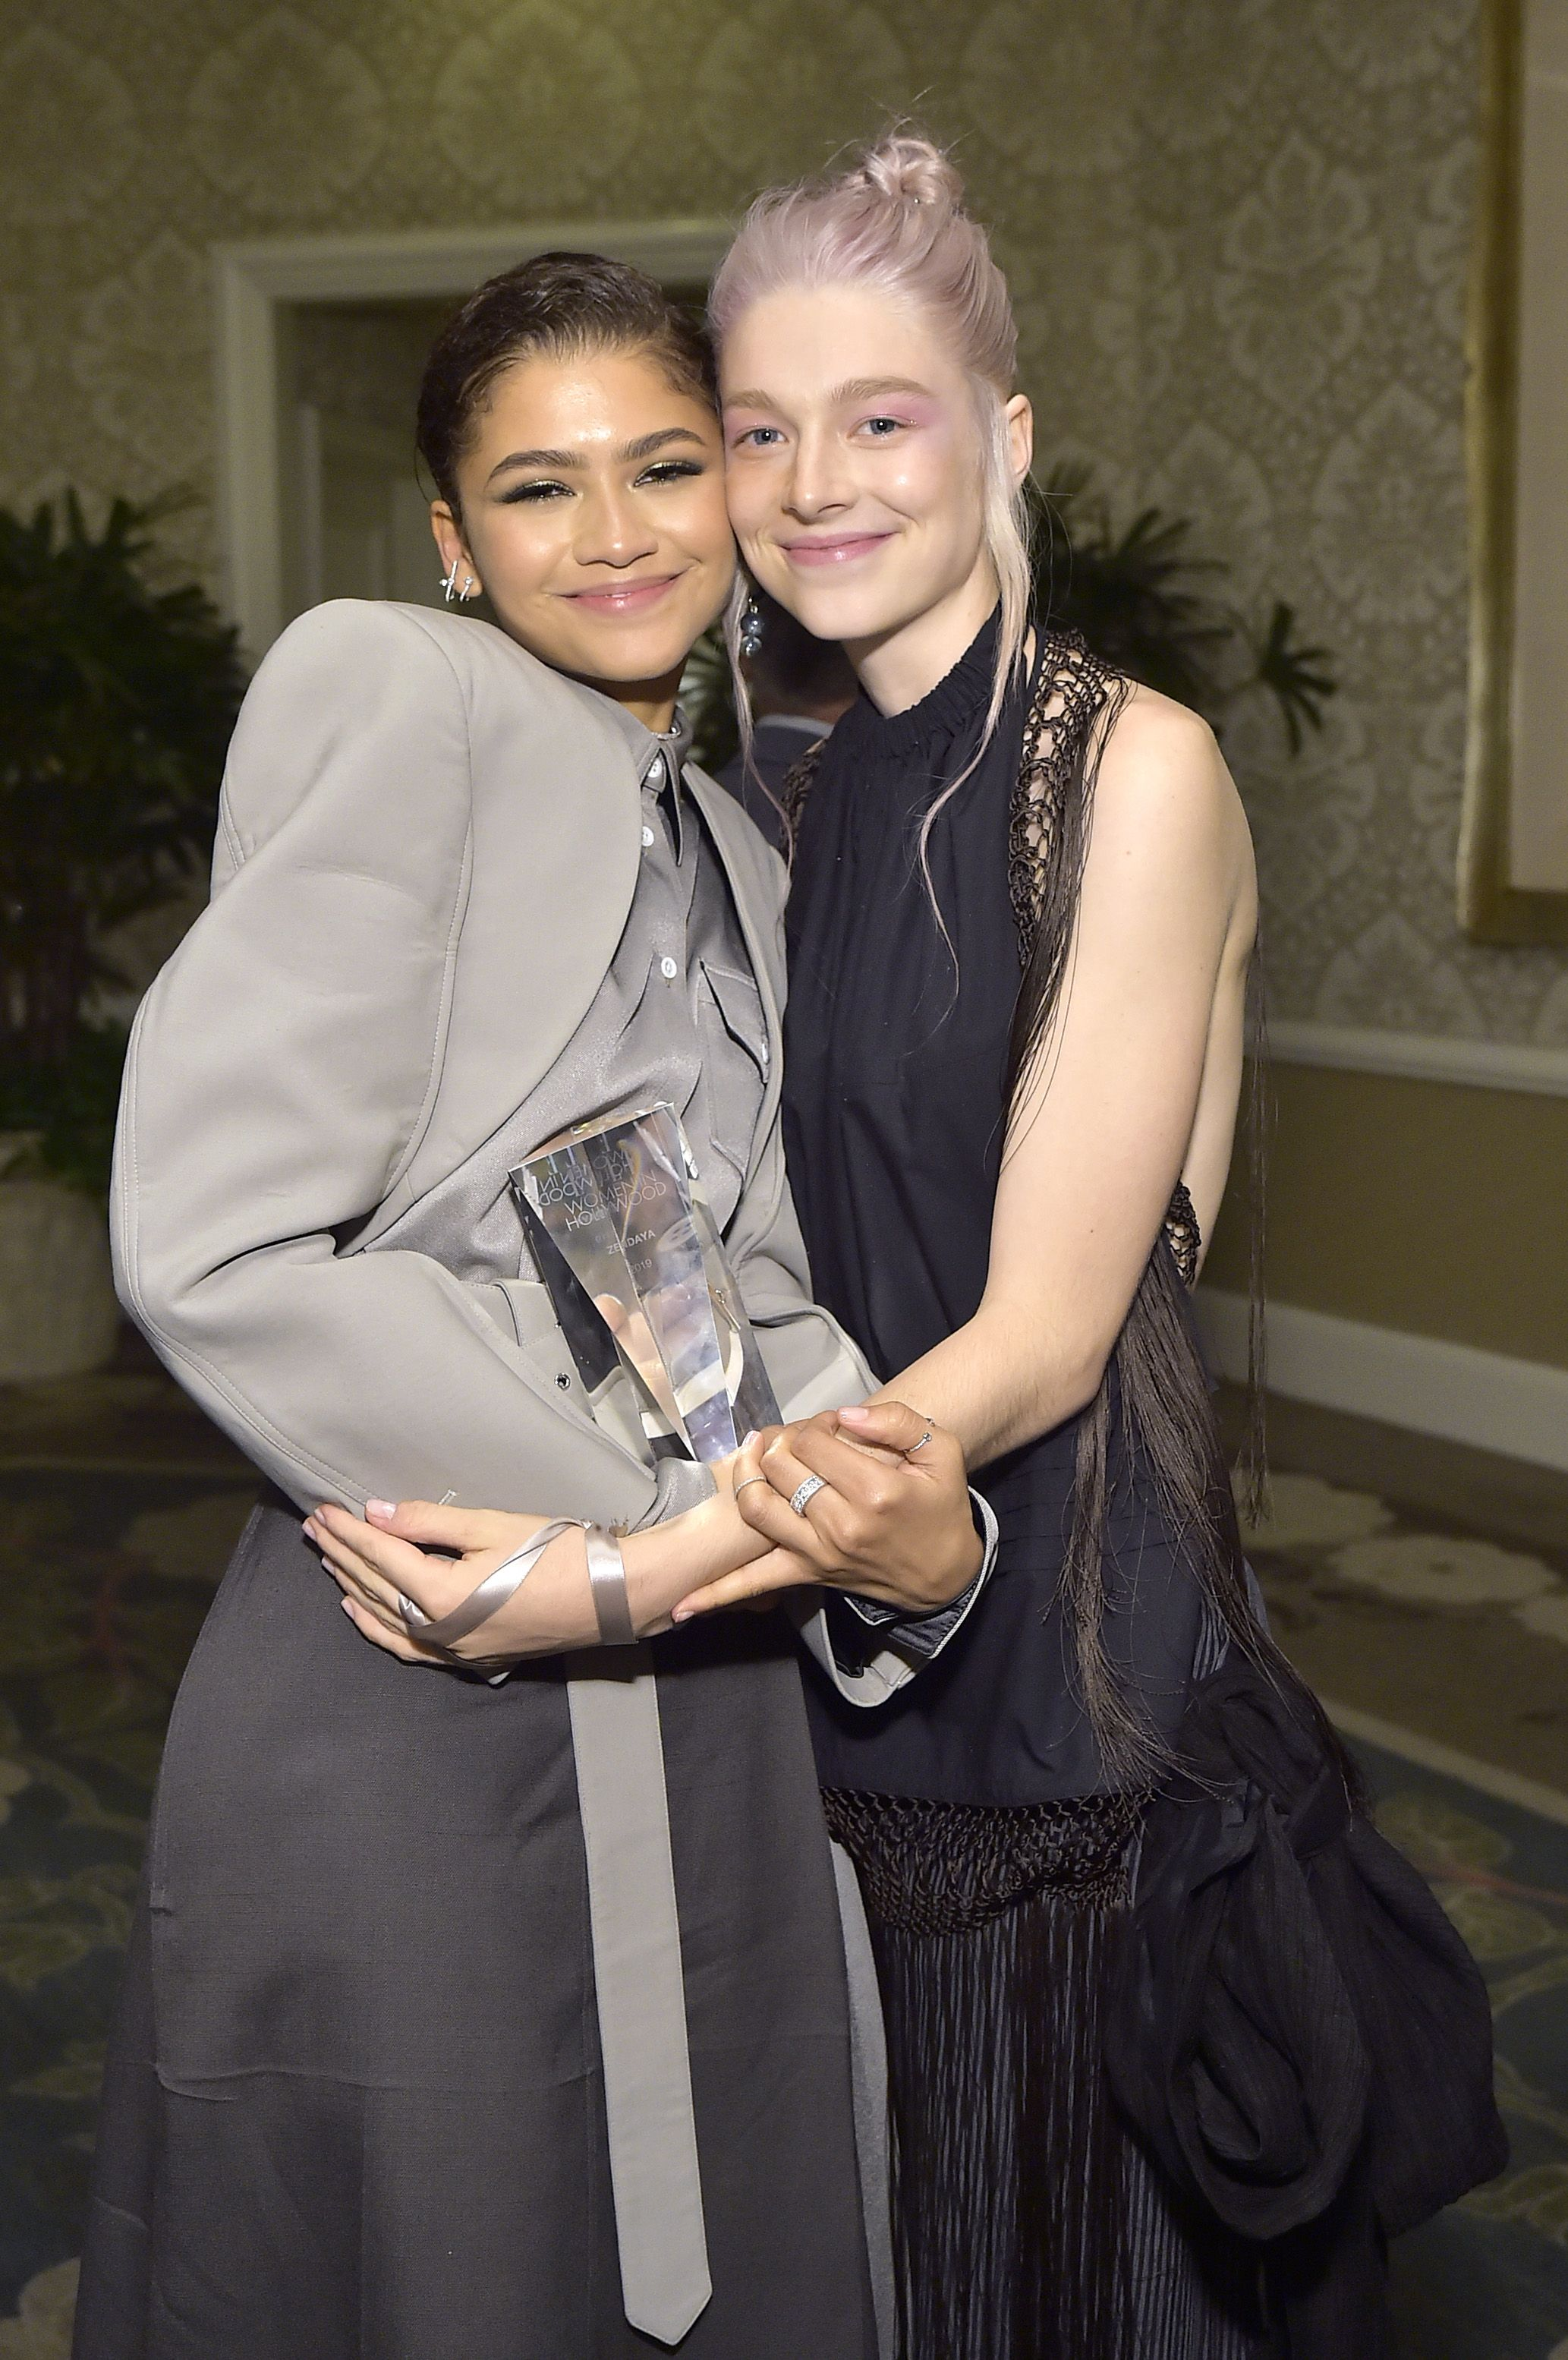 Hunter Schafer Tells All About Her Close Relationship with Zendaya